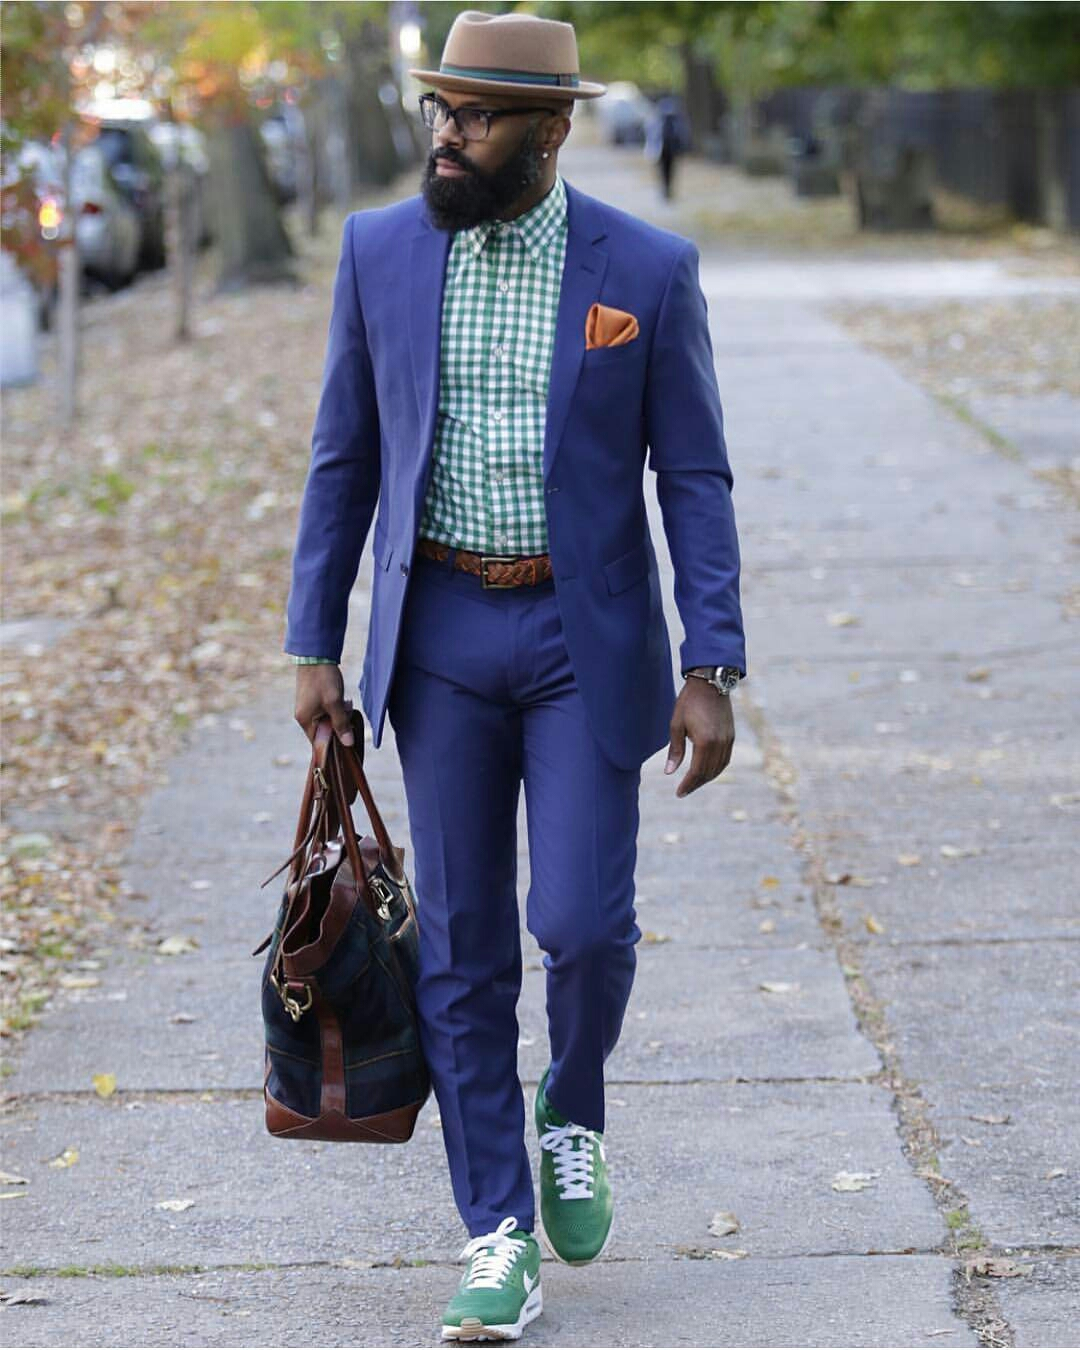 20 Modern Men's Suit Styles that Are Too Cool for Words6